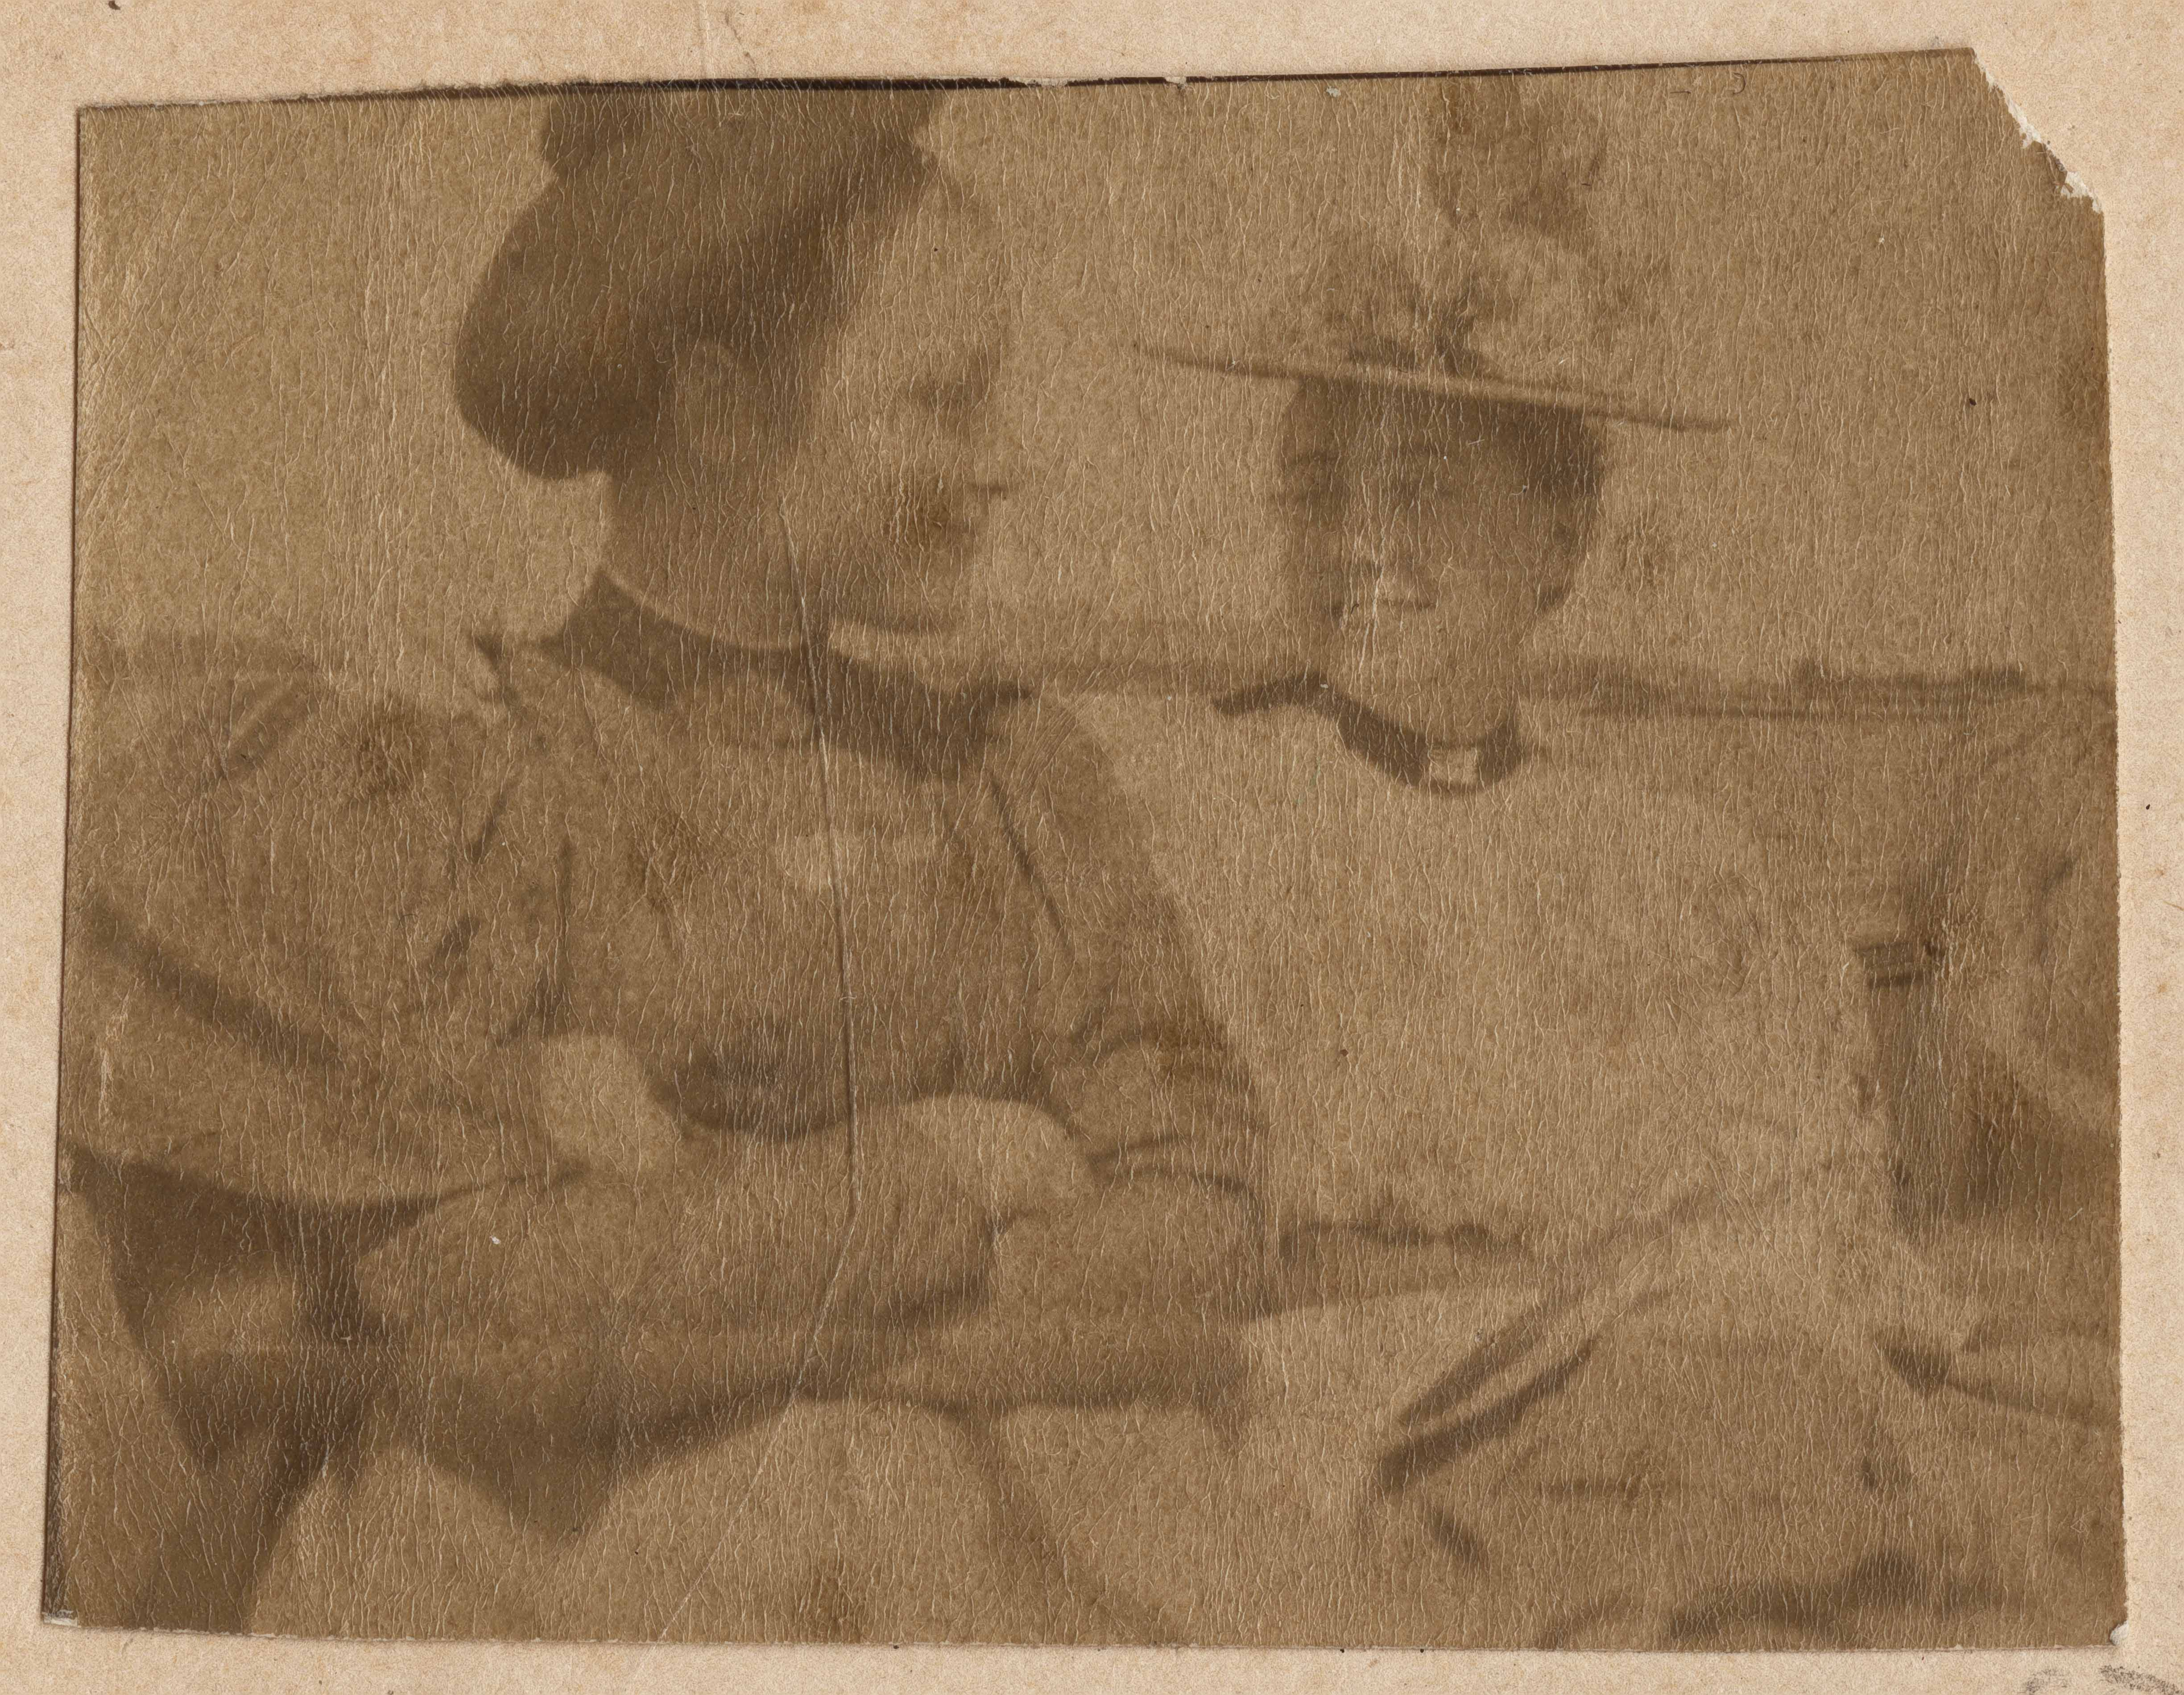 Two unidentified women smiling